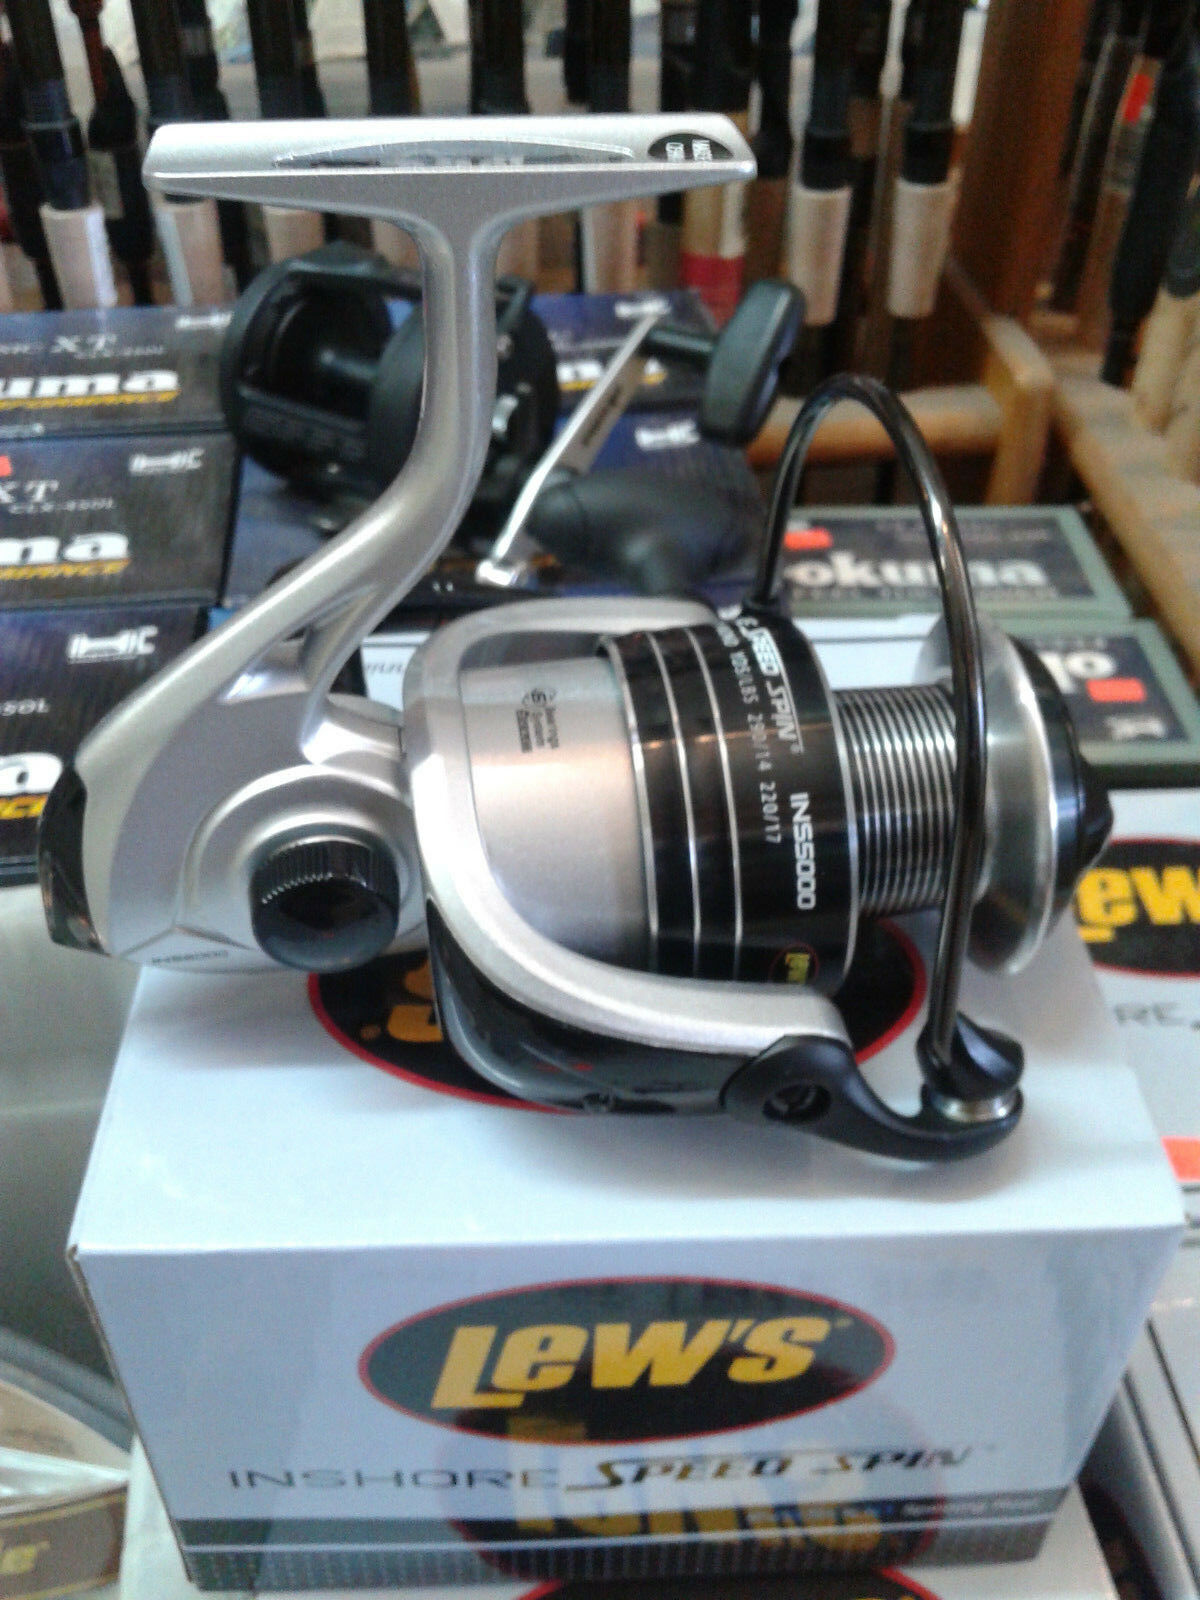 Lew's INS 5000 6.1:1 Inshore Speed Spin Saltwater Spinning Reel